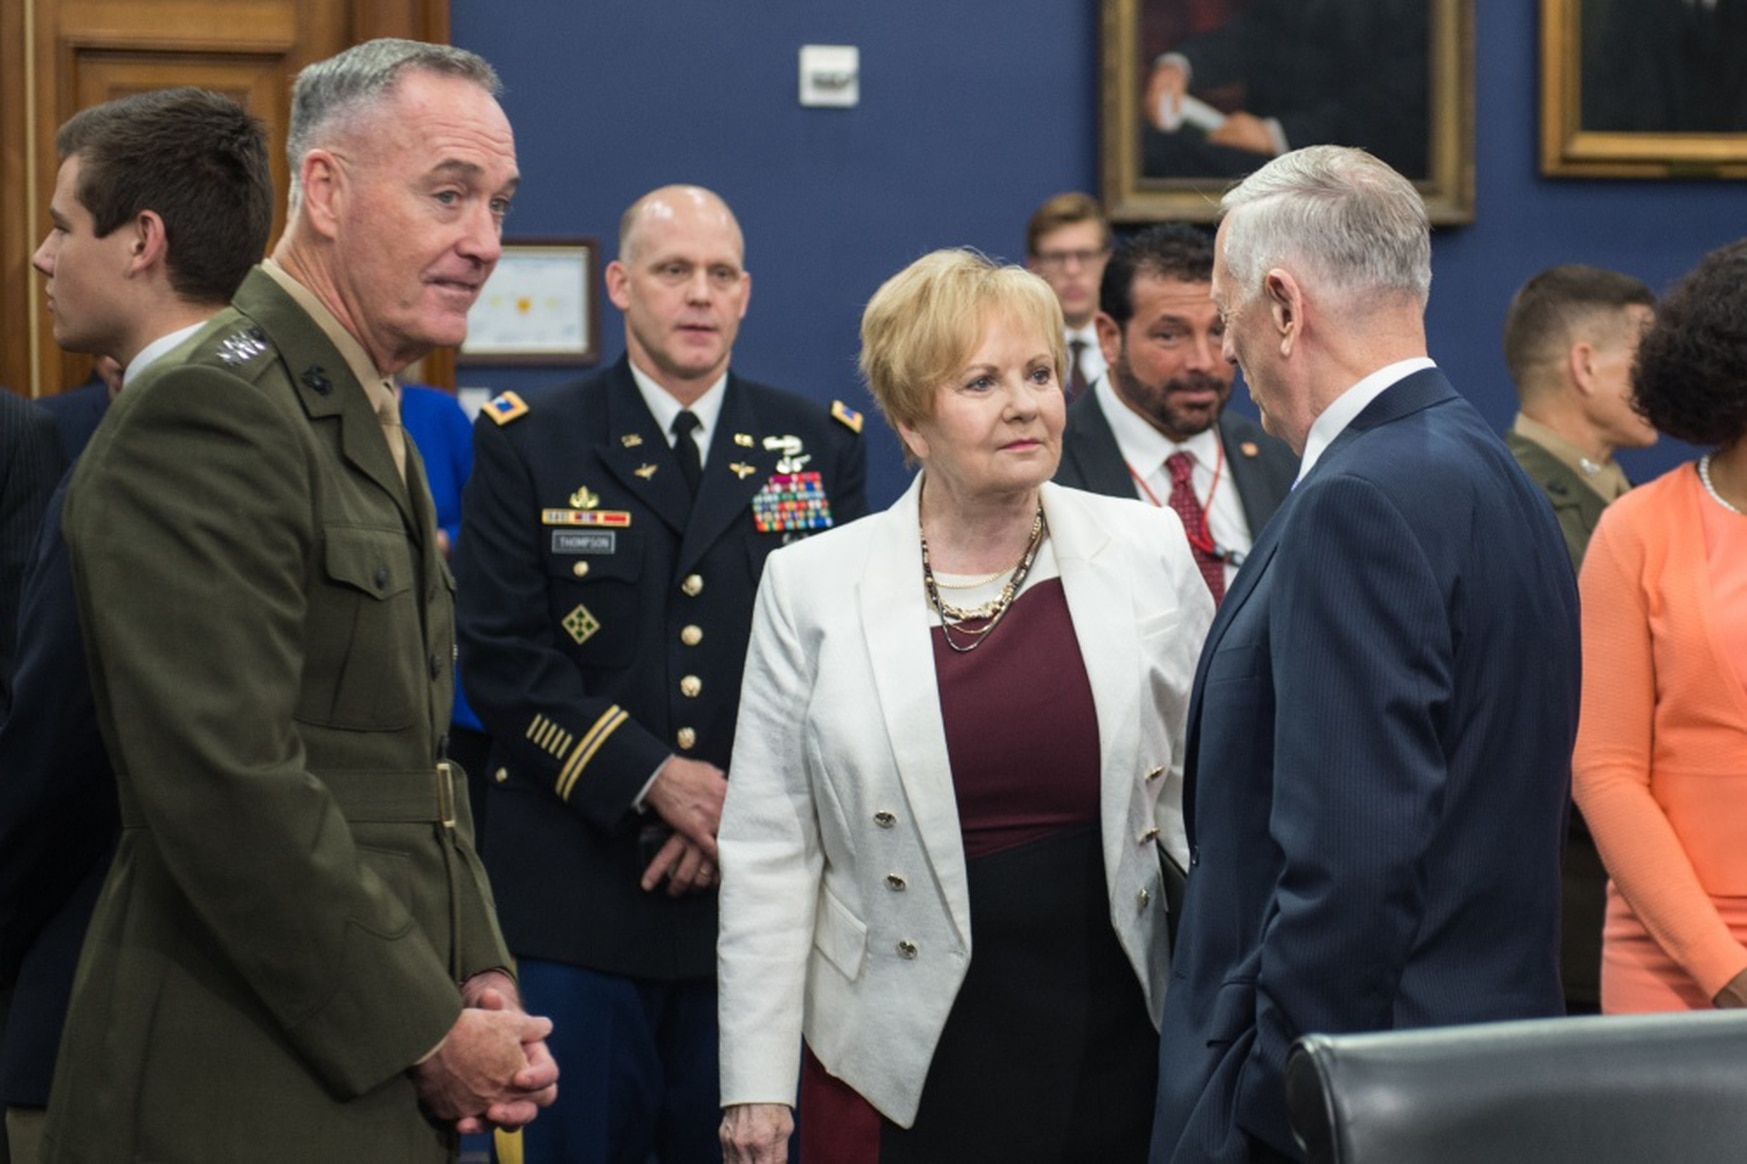 FILE- In this June 15, 2017 file photo, then Defense Secretary Jim Mattis, right, speaks with Rep. Kay Granger, then the House Appropriations Defense subcommittee chairwoman, center, and then-Marine Corps Gen. Joseph F. Dunford, Jr., chairman of the Joint Chiefs of Staff, left, before a budget hearing in Washington D.C. (Photo by Sgt. James McCann/Office of the Chairman of the Joint Chiefs of Staff)